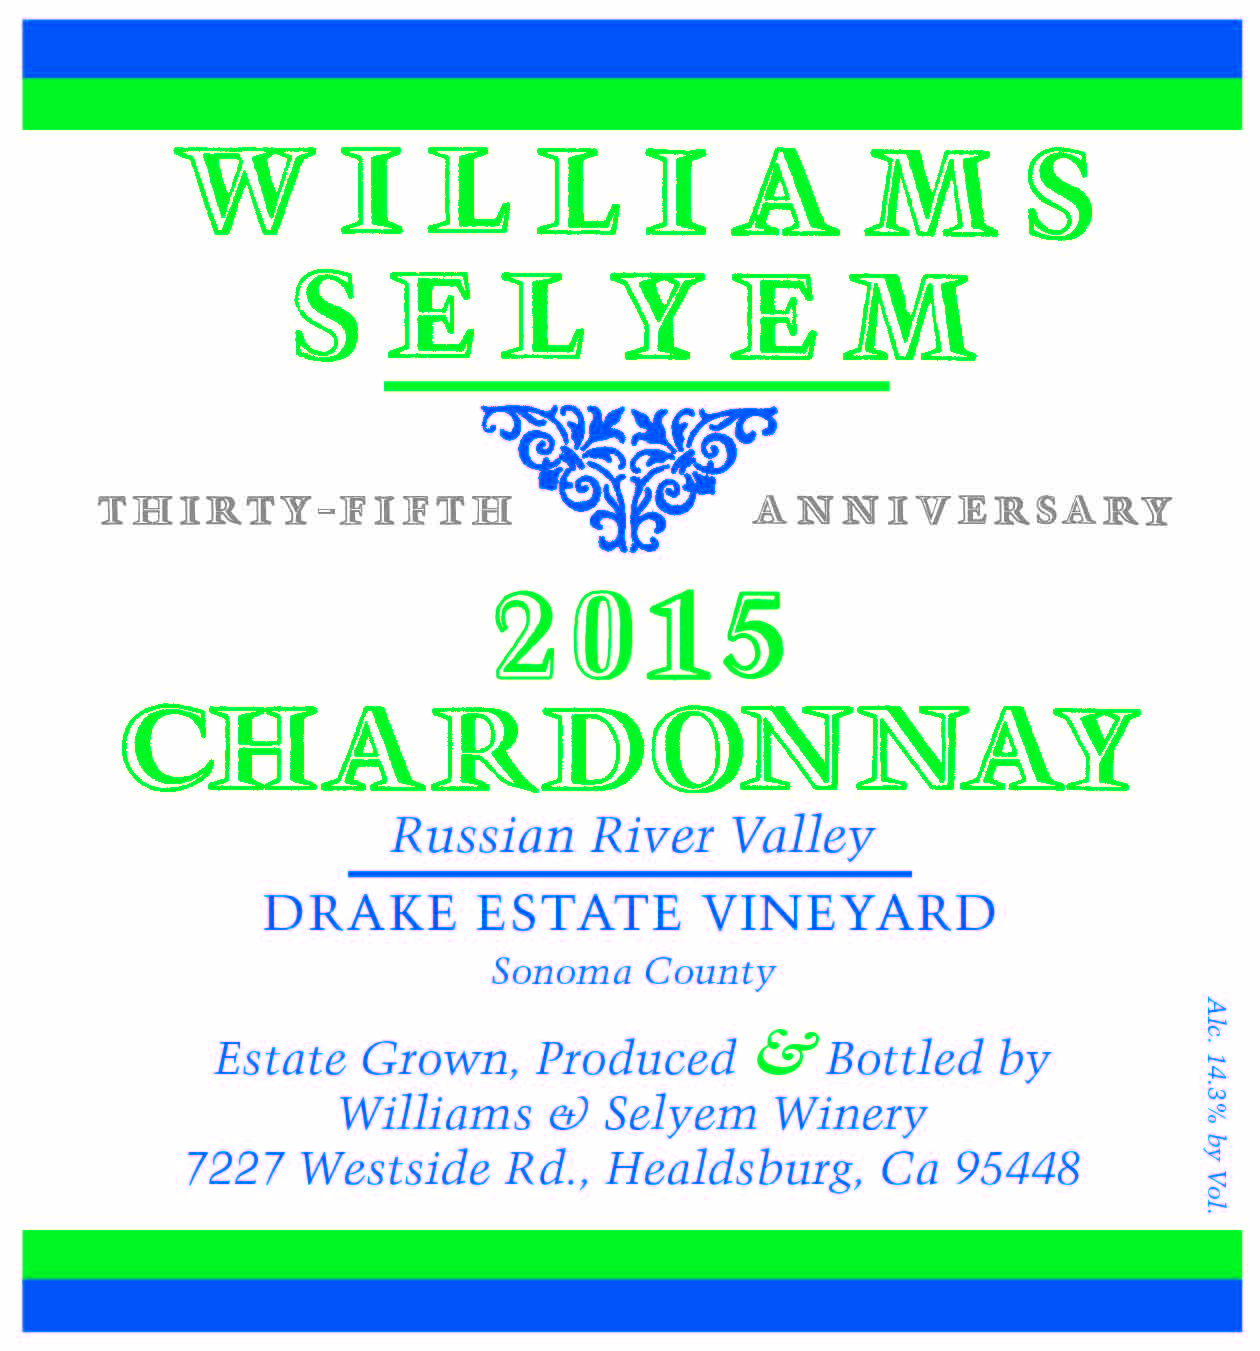 Williams Selyem Chardonnay Drake Estate Vineyard